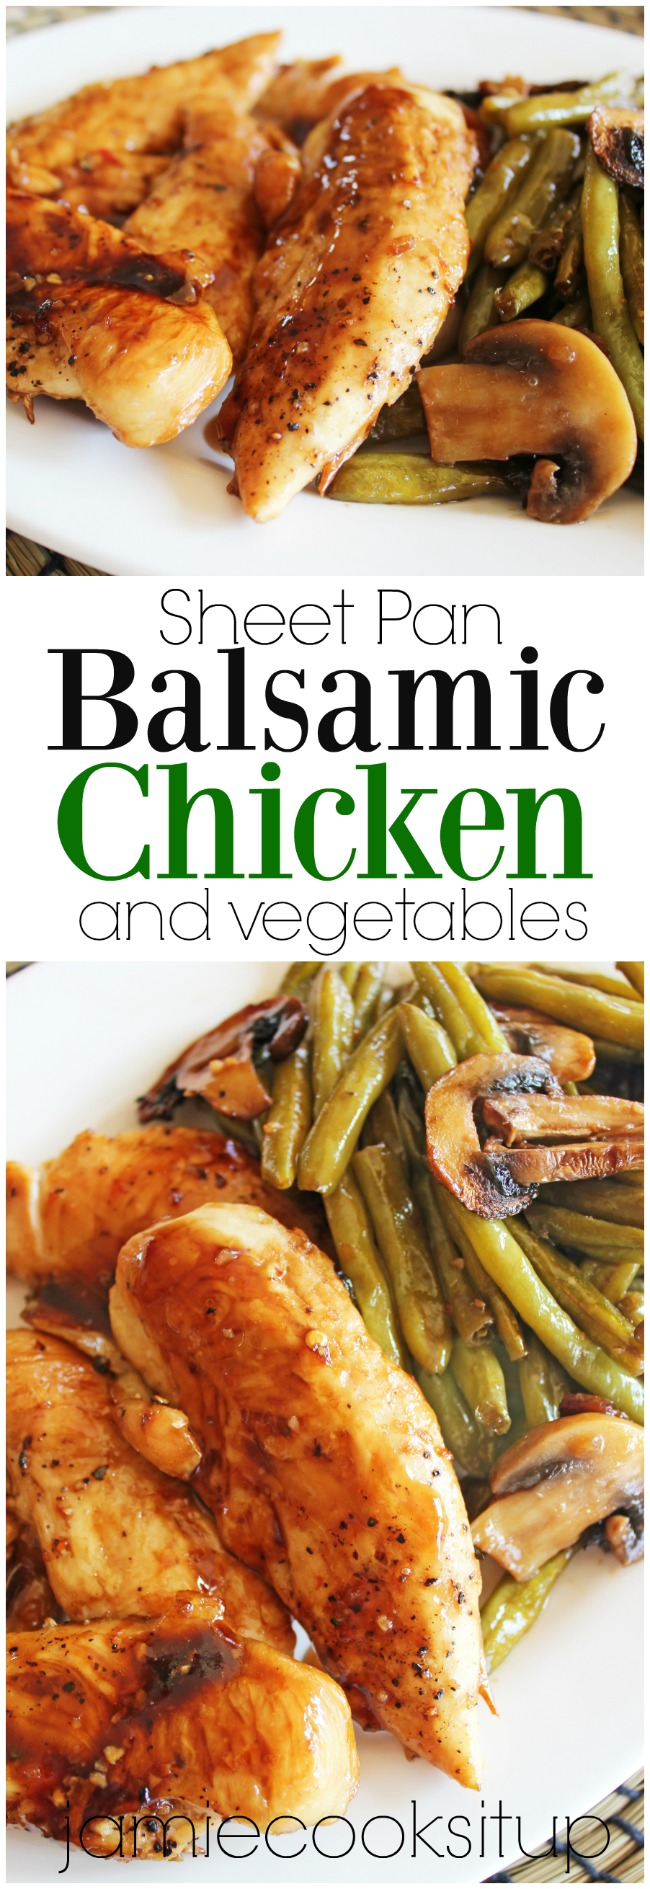 Balsamic Chicken and Vegetables from Jamie Cooks It Up!